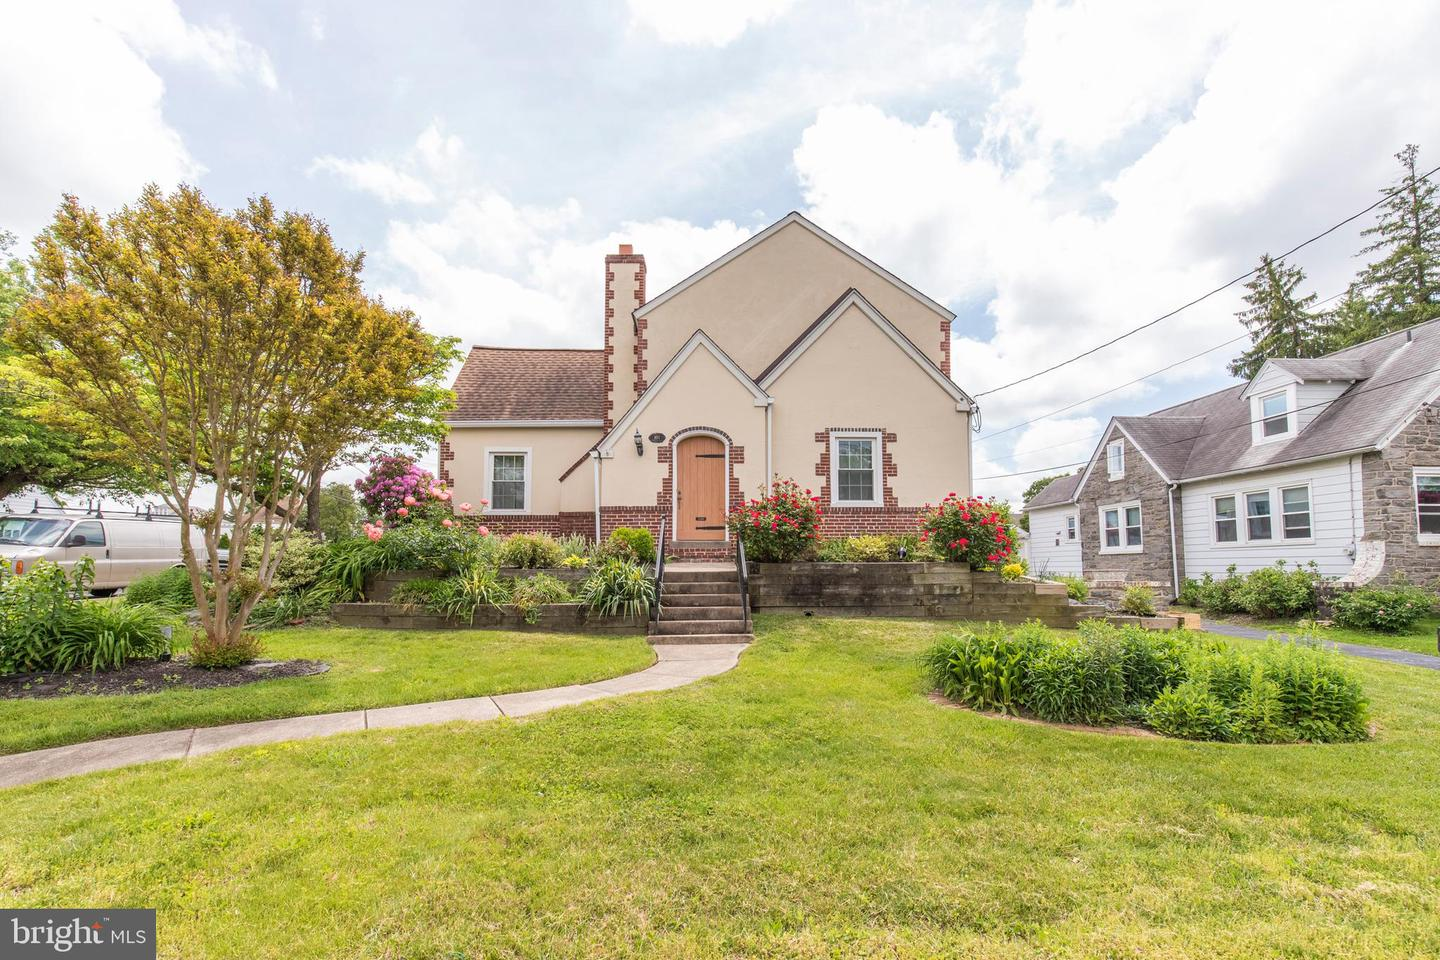 101 W Hillcrest Avenue Havertown, PA 19083